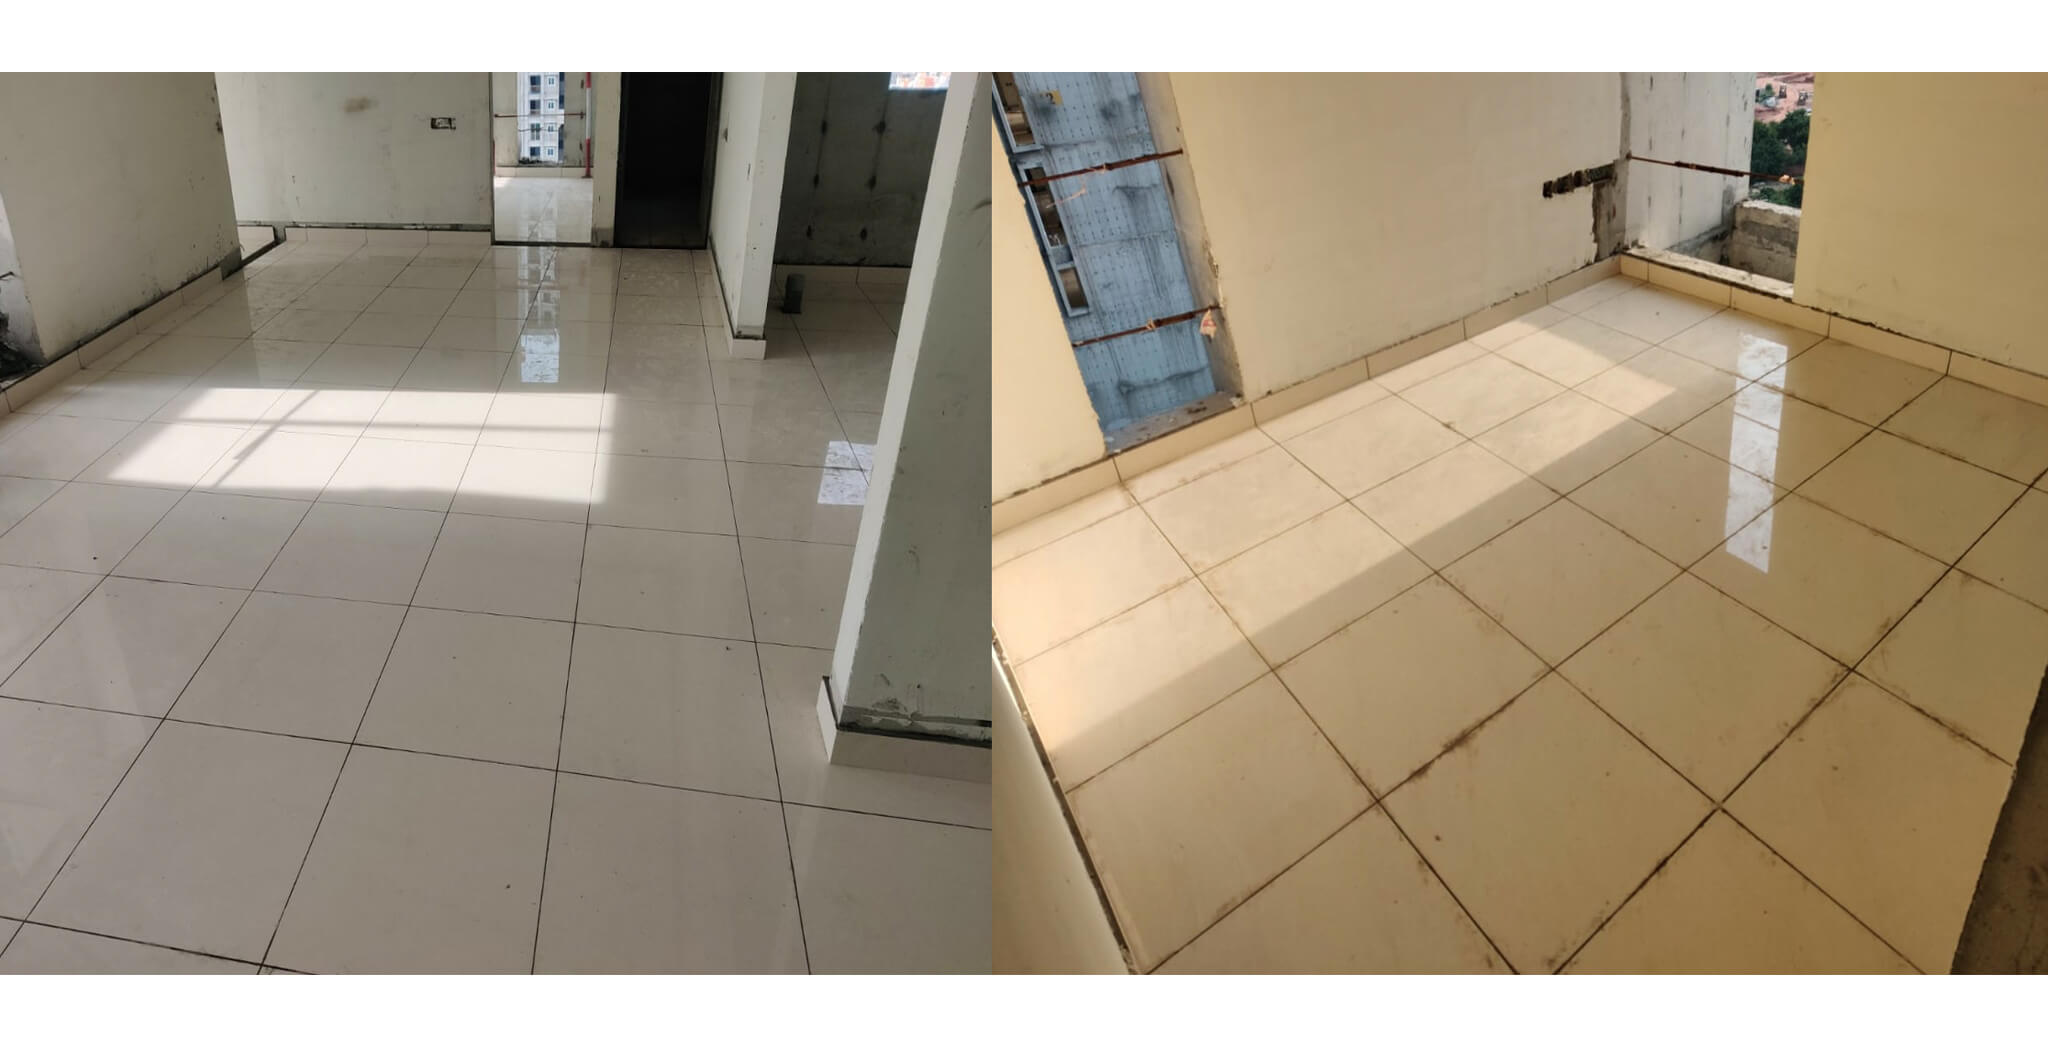 Aug 2021 - Serene: Flooring in progress in all towers